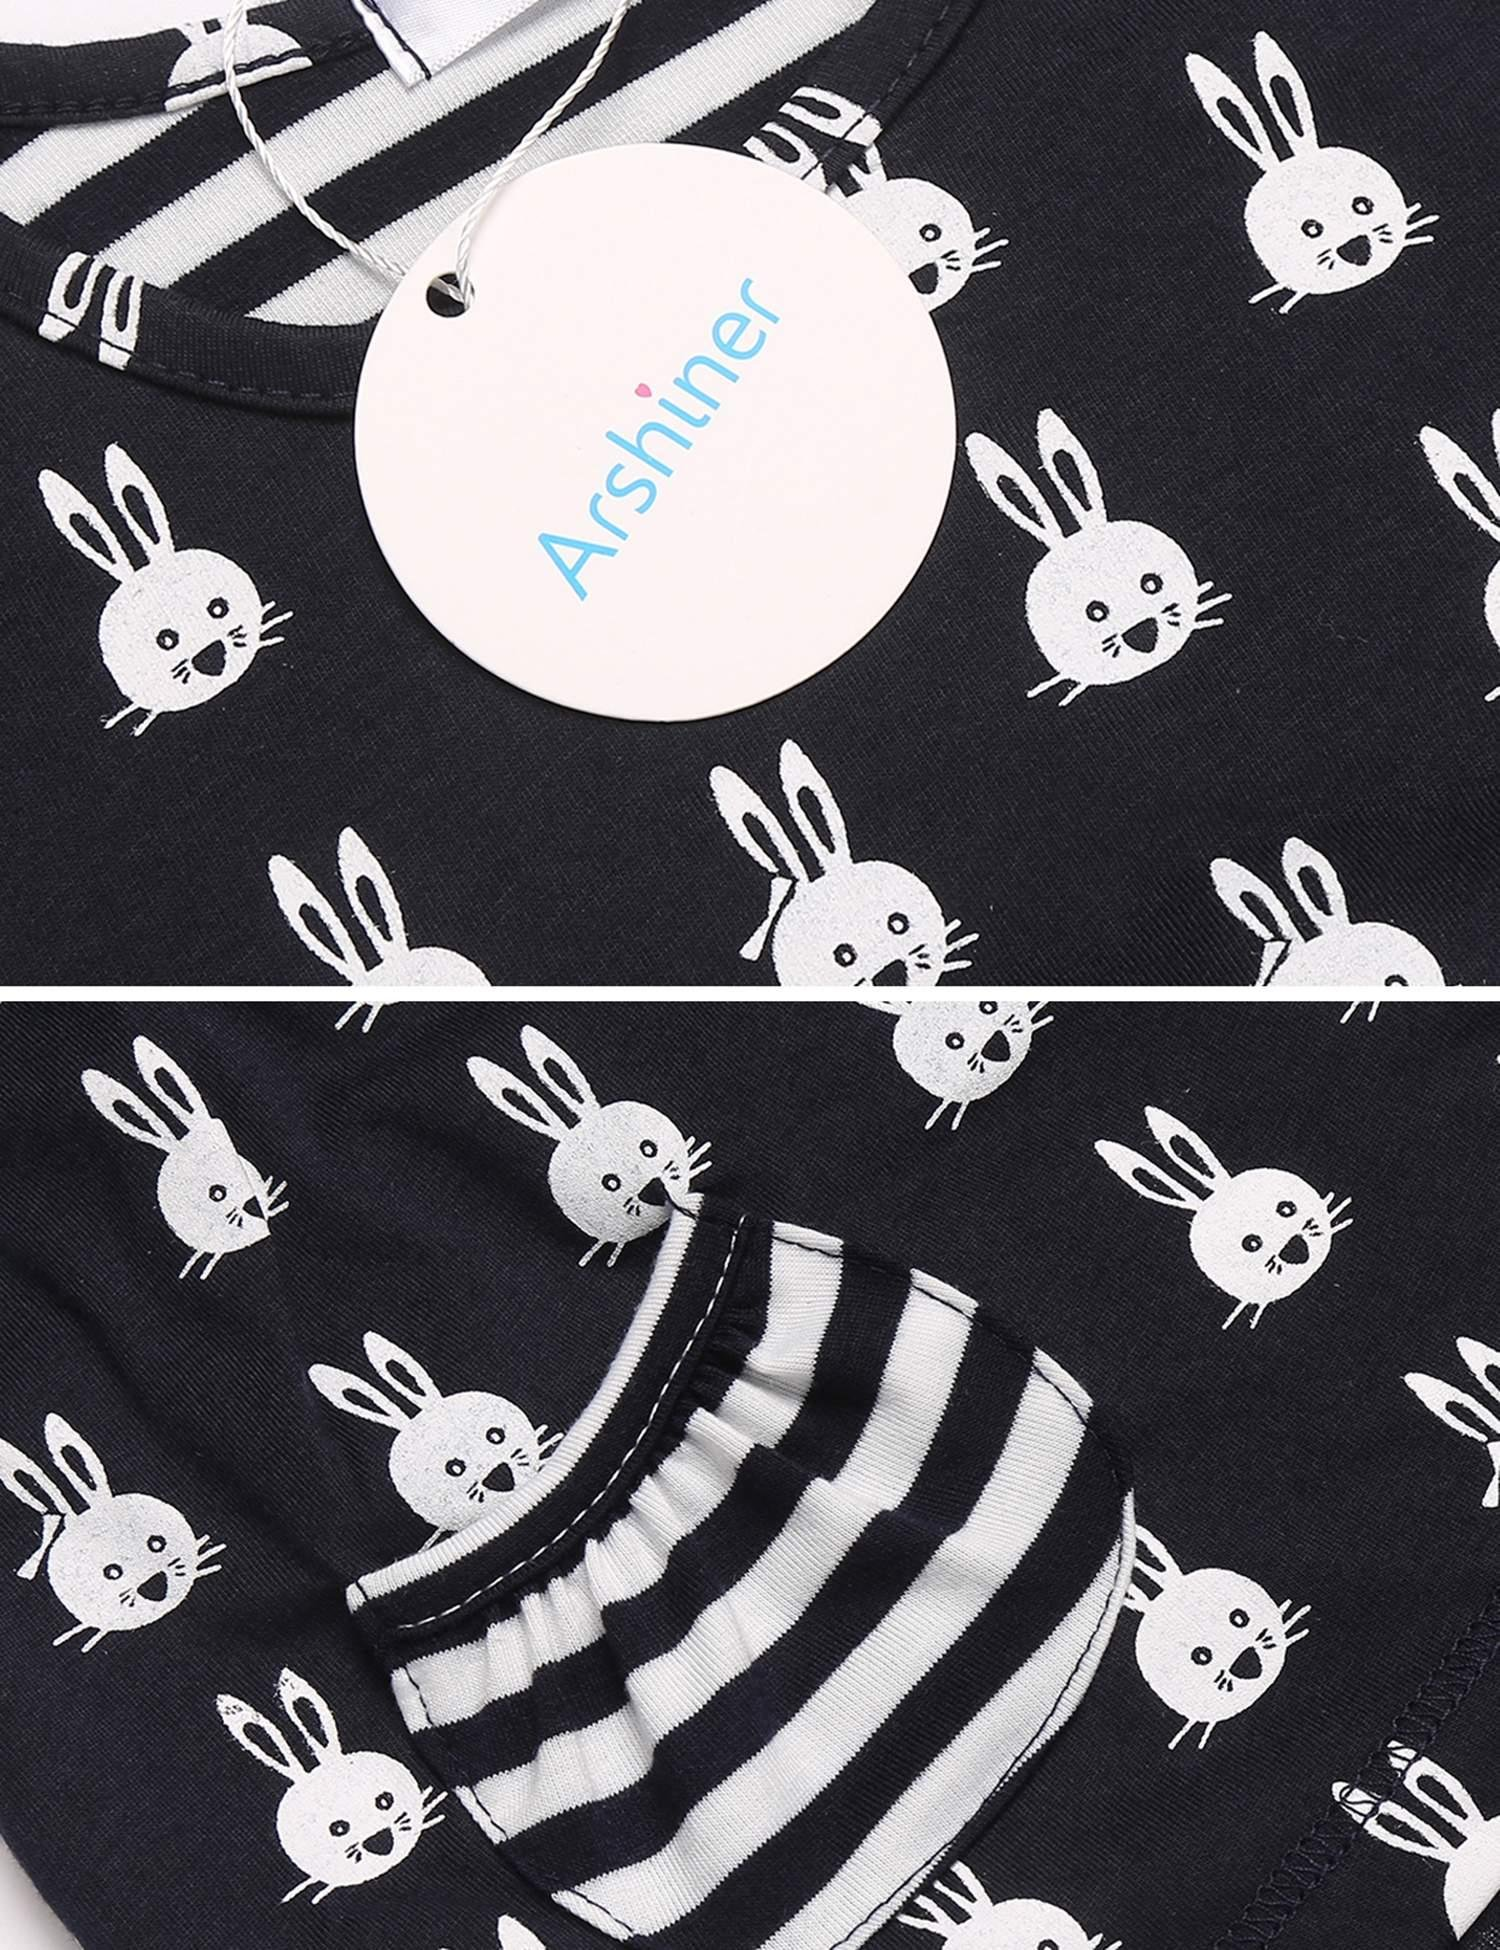 Arshiner Little Girls Long Sleeve Cute Rabbit Print with Pockets Cotton Outfit 12 pcs Pants Sets Top+Legging,Navy Blue,130(7-8years old) by Arshiner (Image #7)